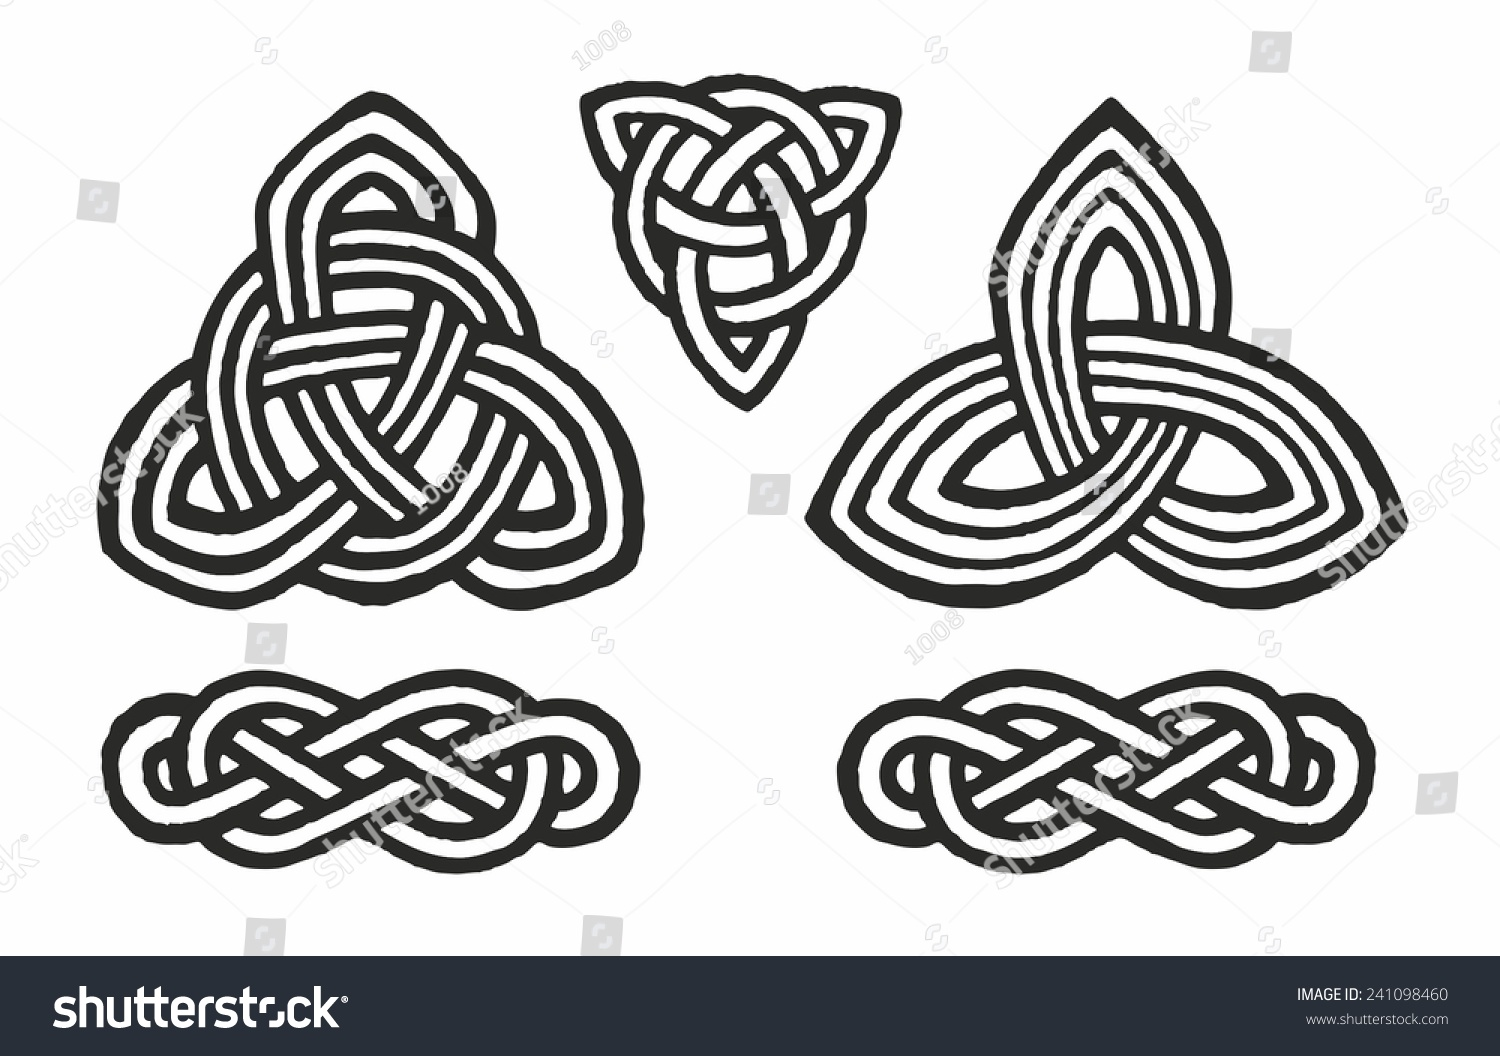 medieval celtic knot tattoo ornament stock vector 241098460 shutterstock. Black Bedroom Furniture Sets. Home Design Ideas